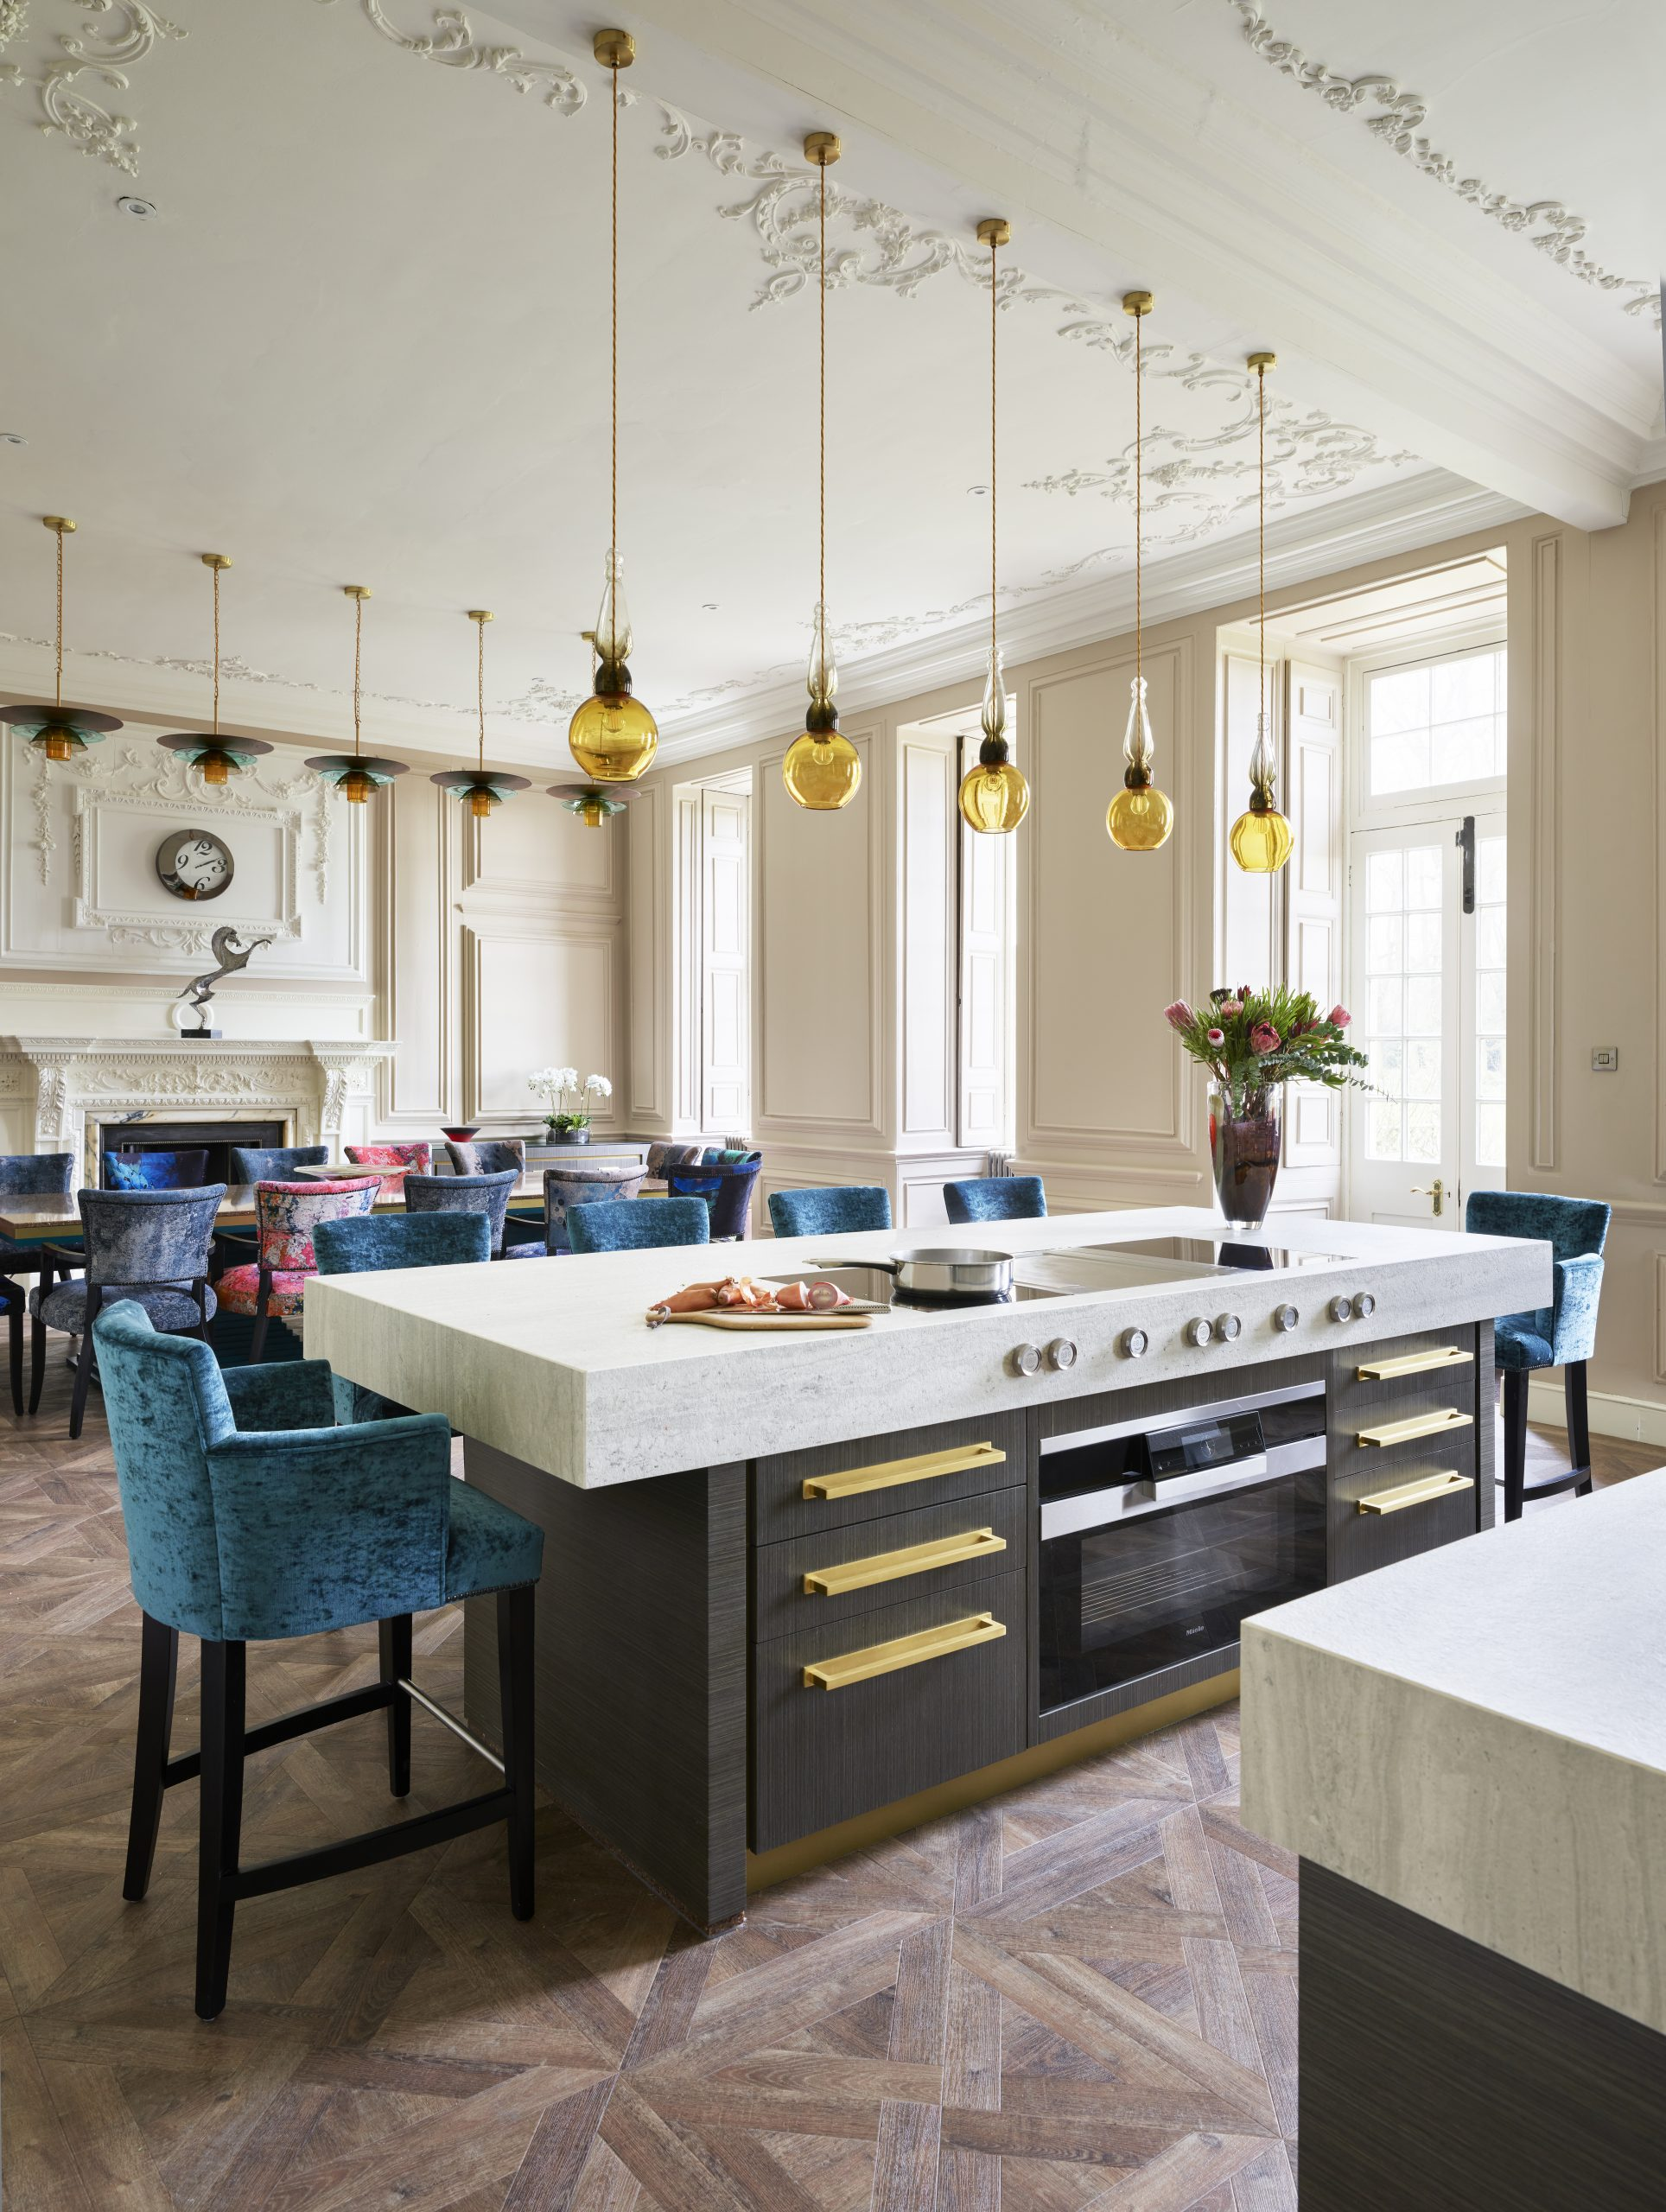 Manor House Kitchen and Pantry - Chiselwood